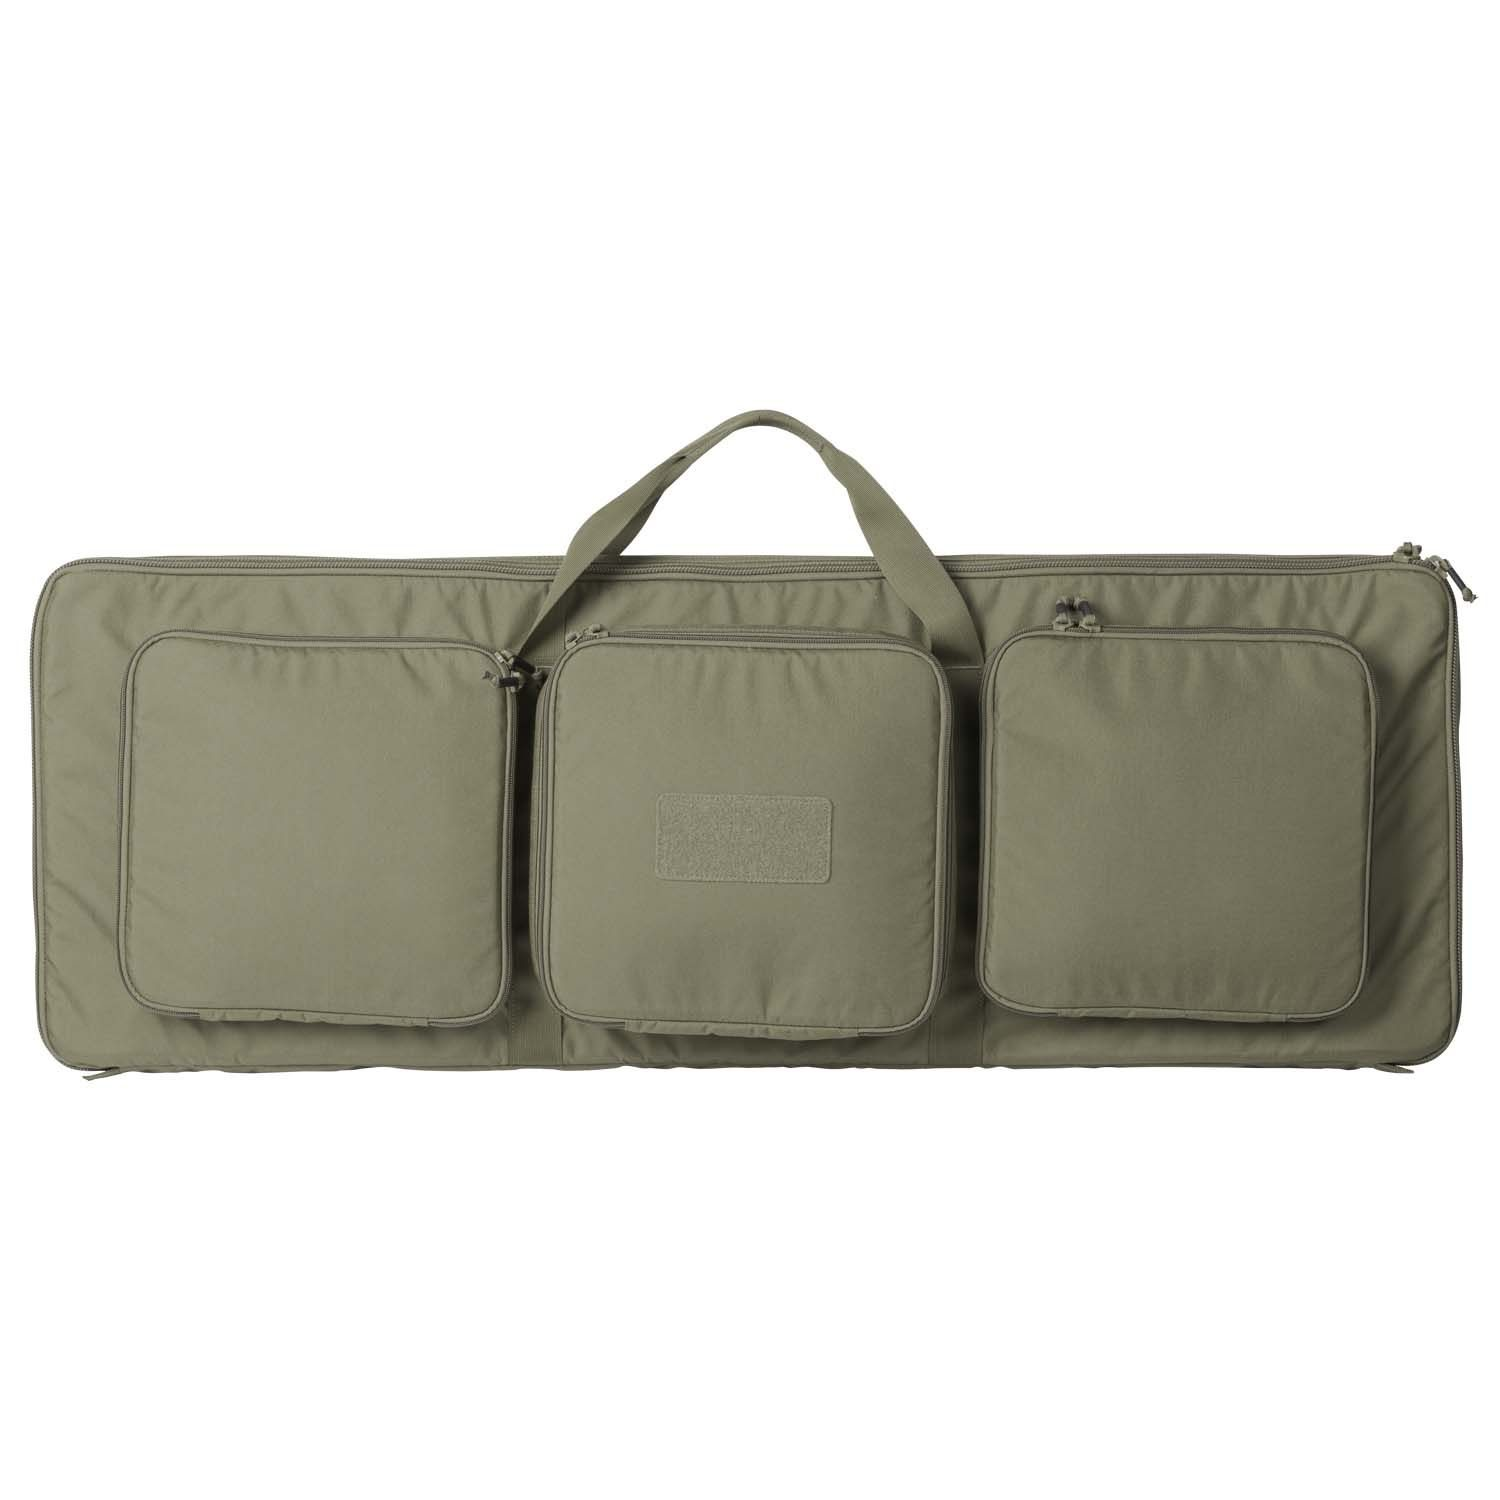 Puzdro na pušku RIFLE BAG 18® ADAPTIVE GREEN